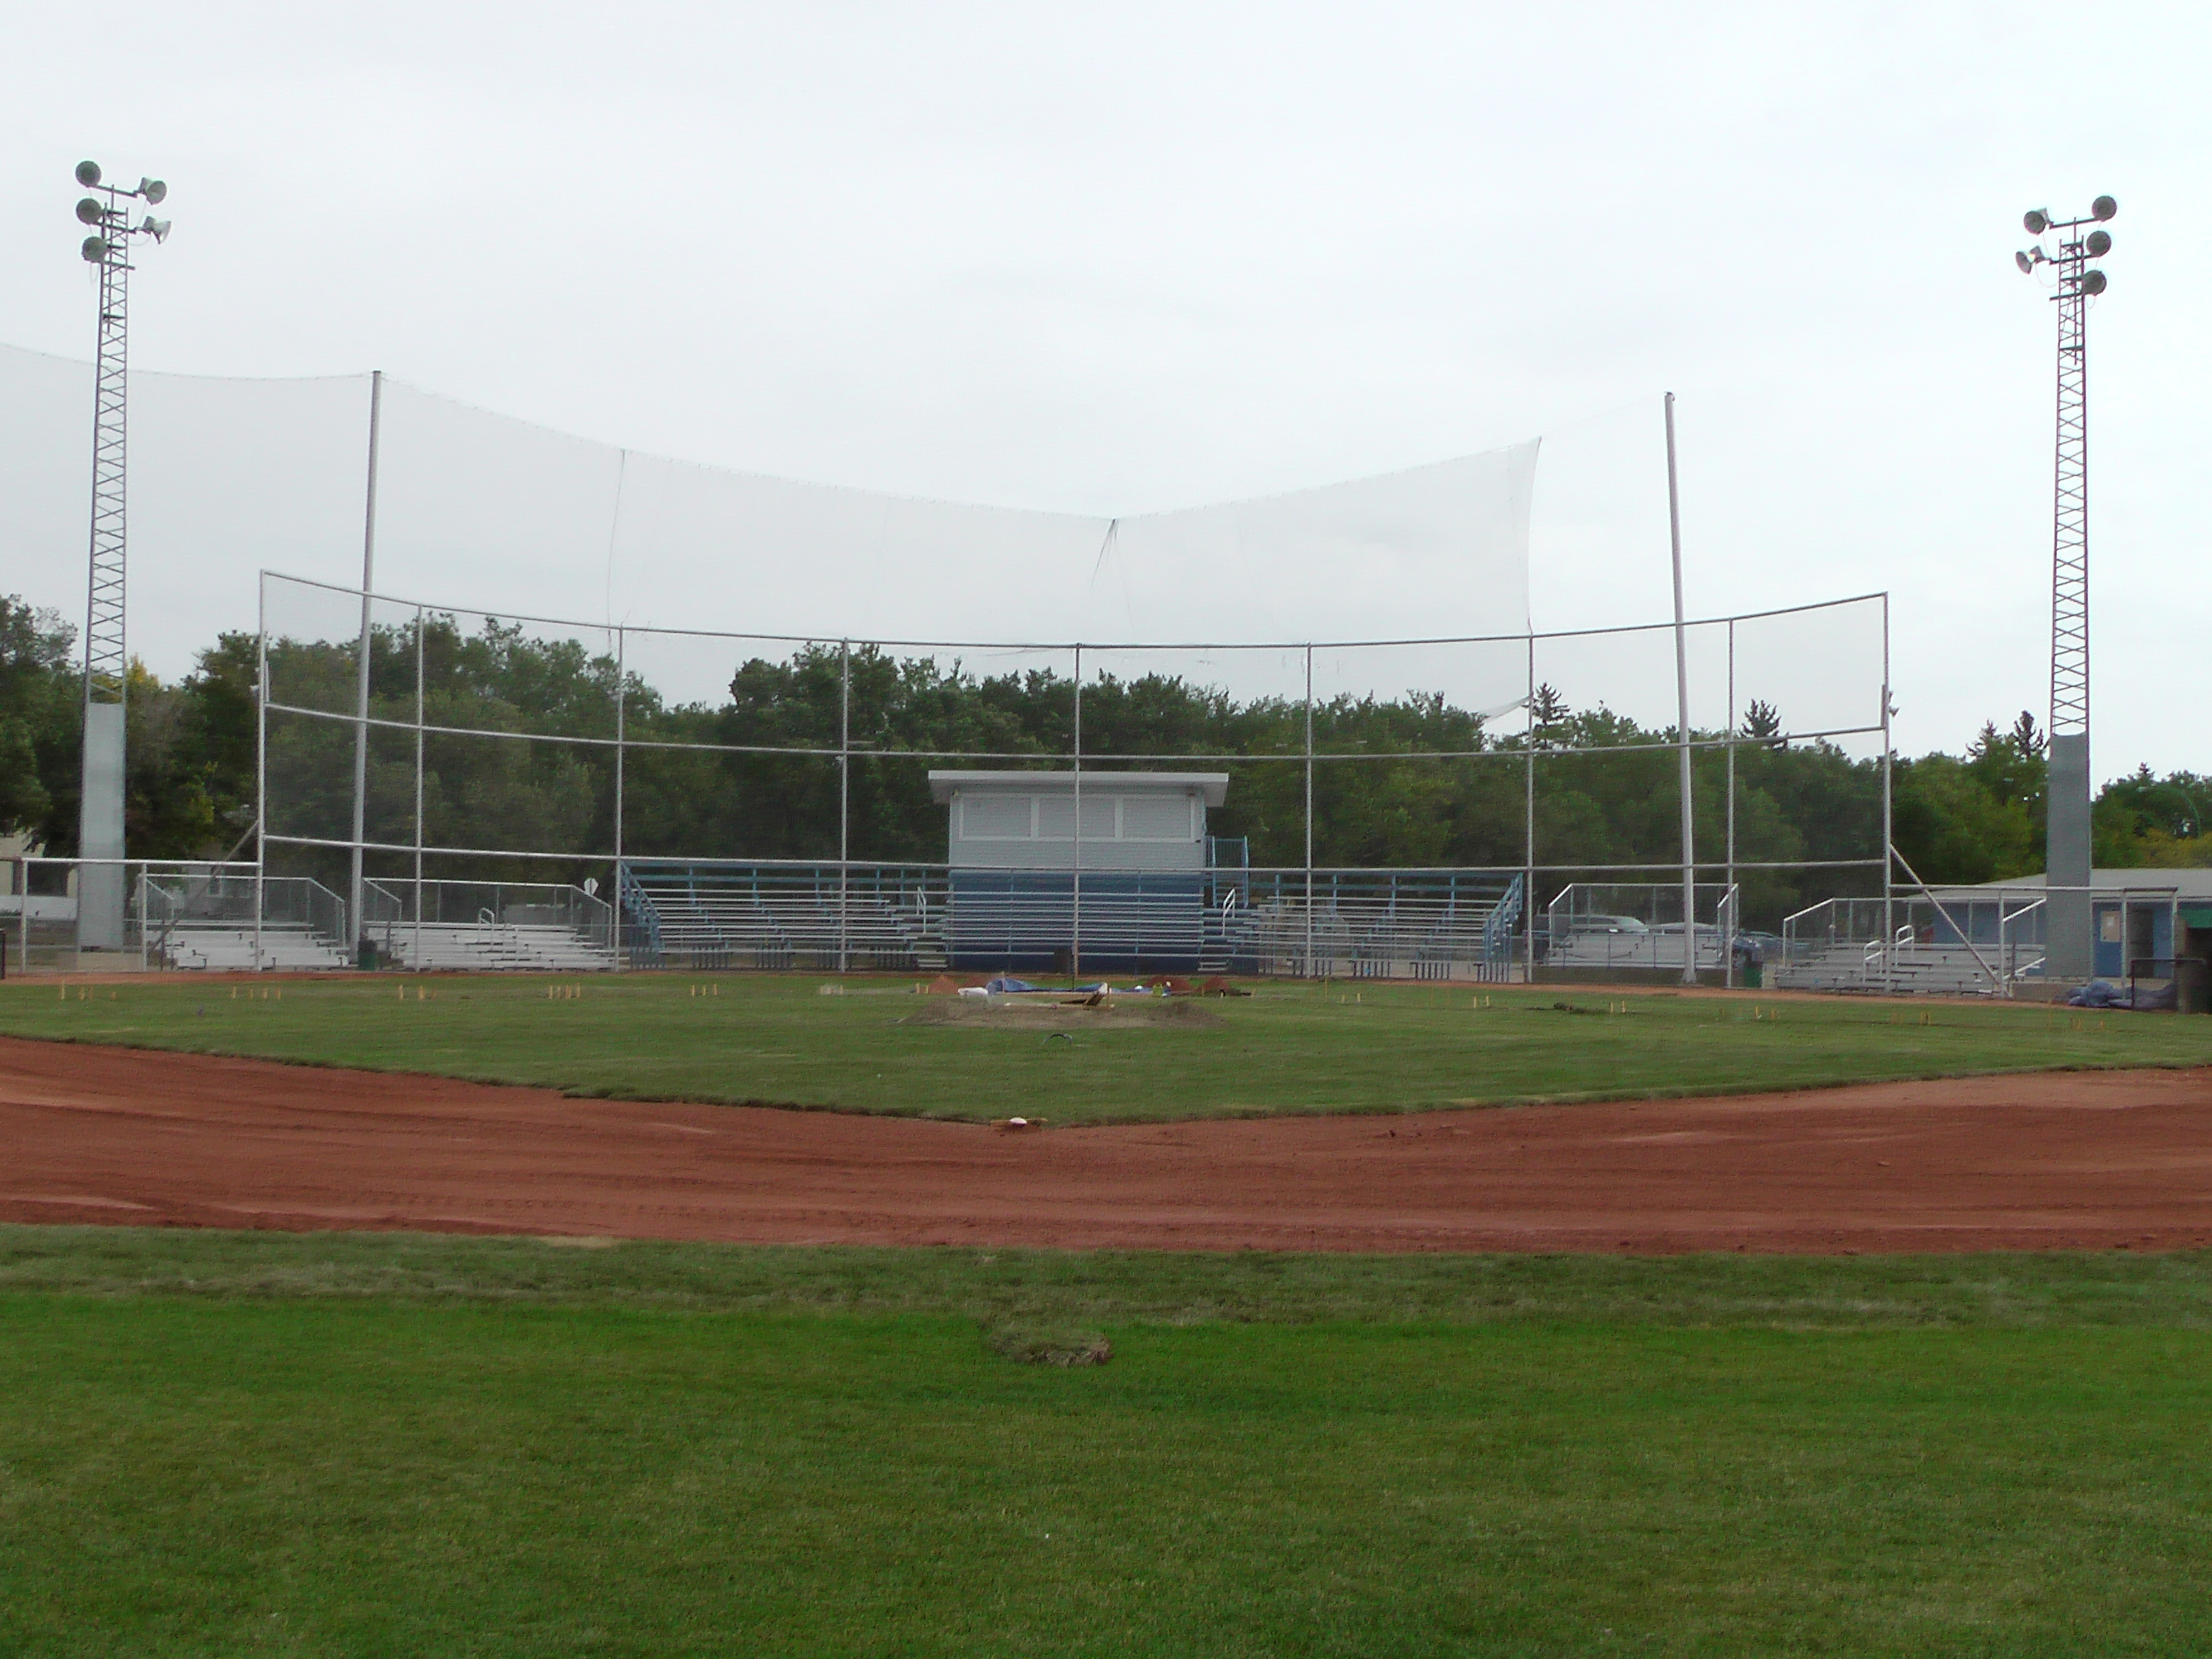 Sept 7 & 8 2018, Optimist Park Field Renovations, sod down being watered - Image 12